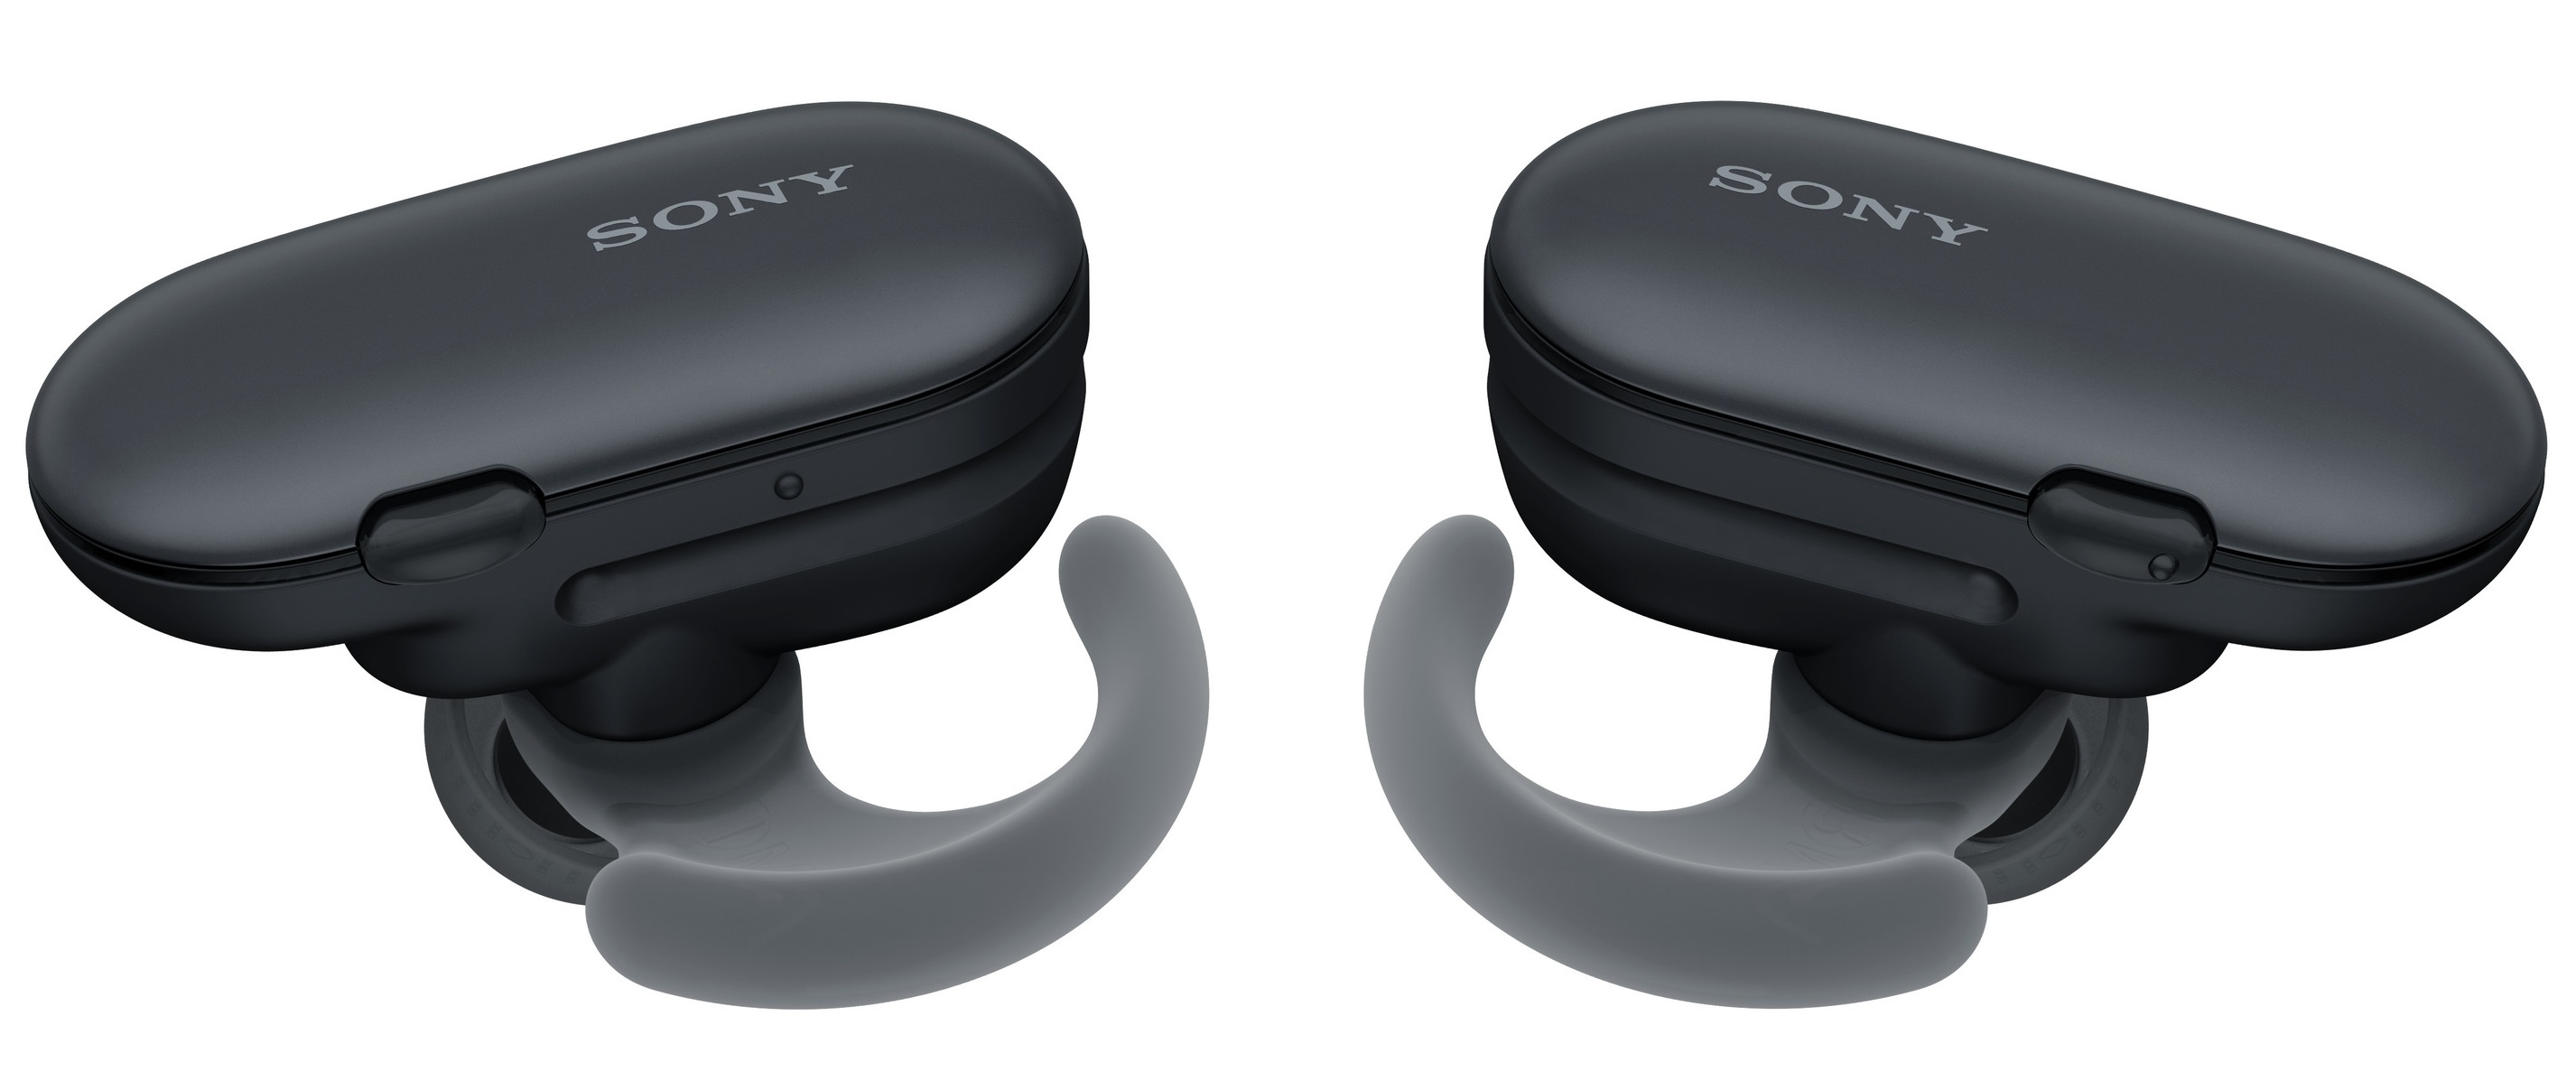 Sony WF-SP900 Waterproof Wireless Headphones Coming to PH this October!